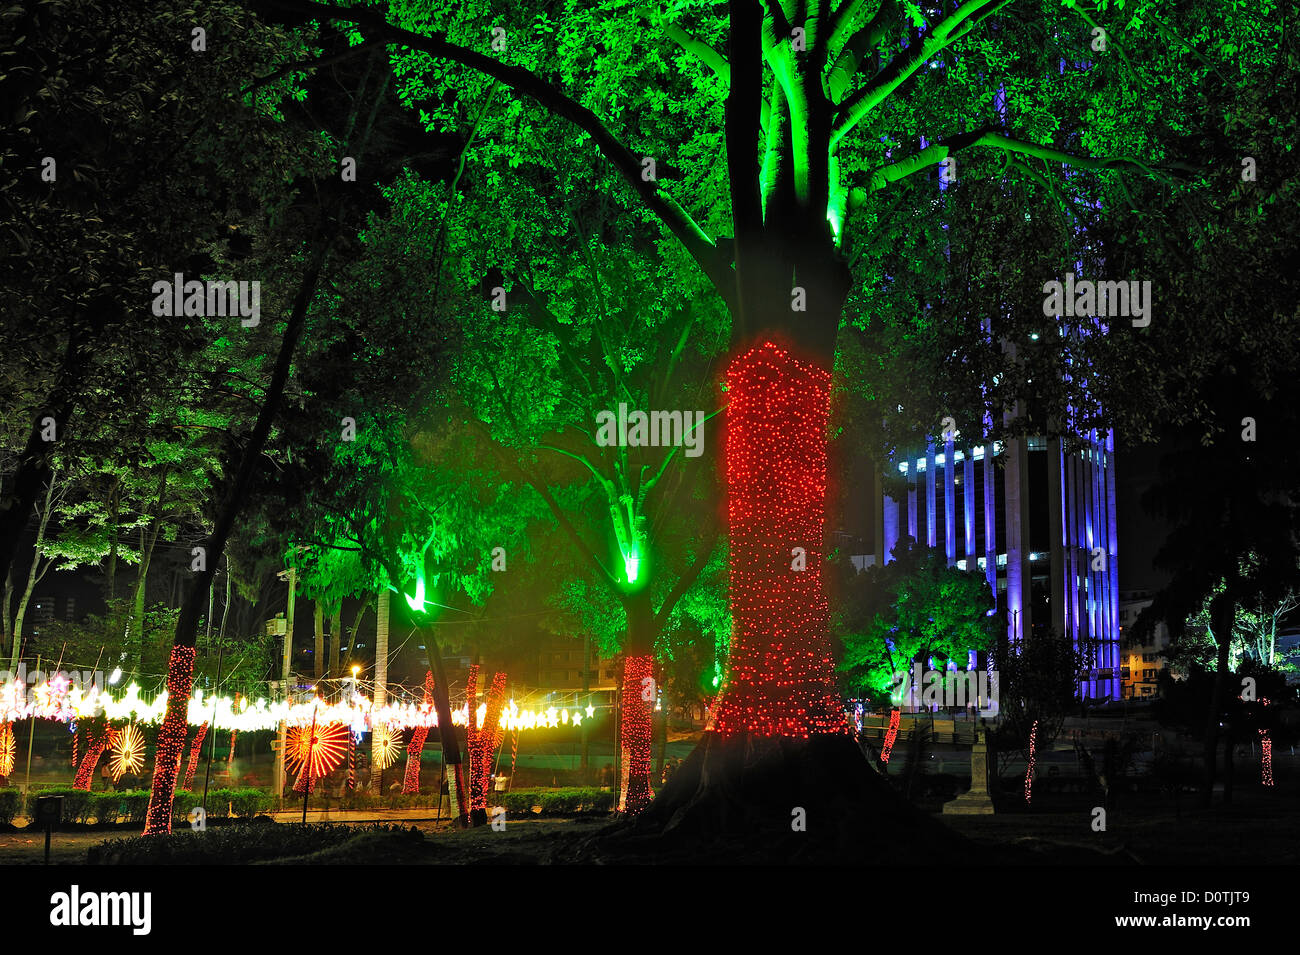 Christmas In Colombia South America.City Park Tree Downtown Lights Christmas Decorations